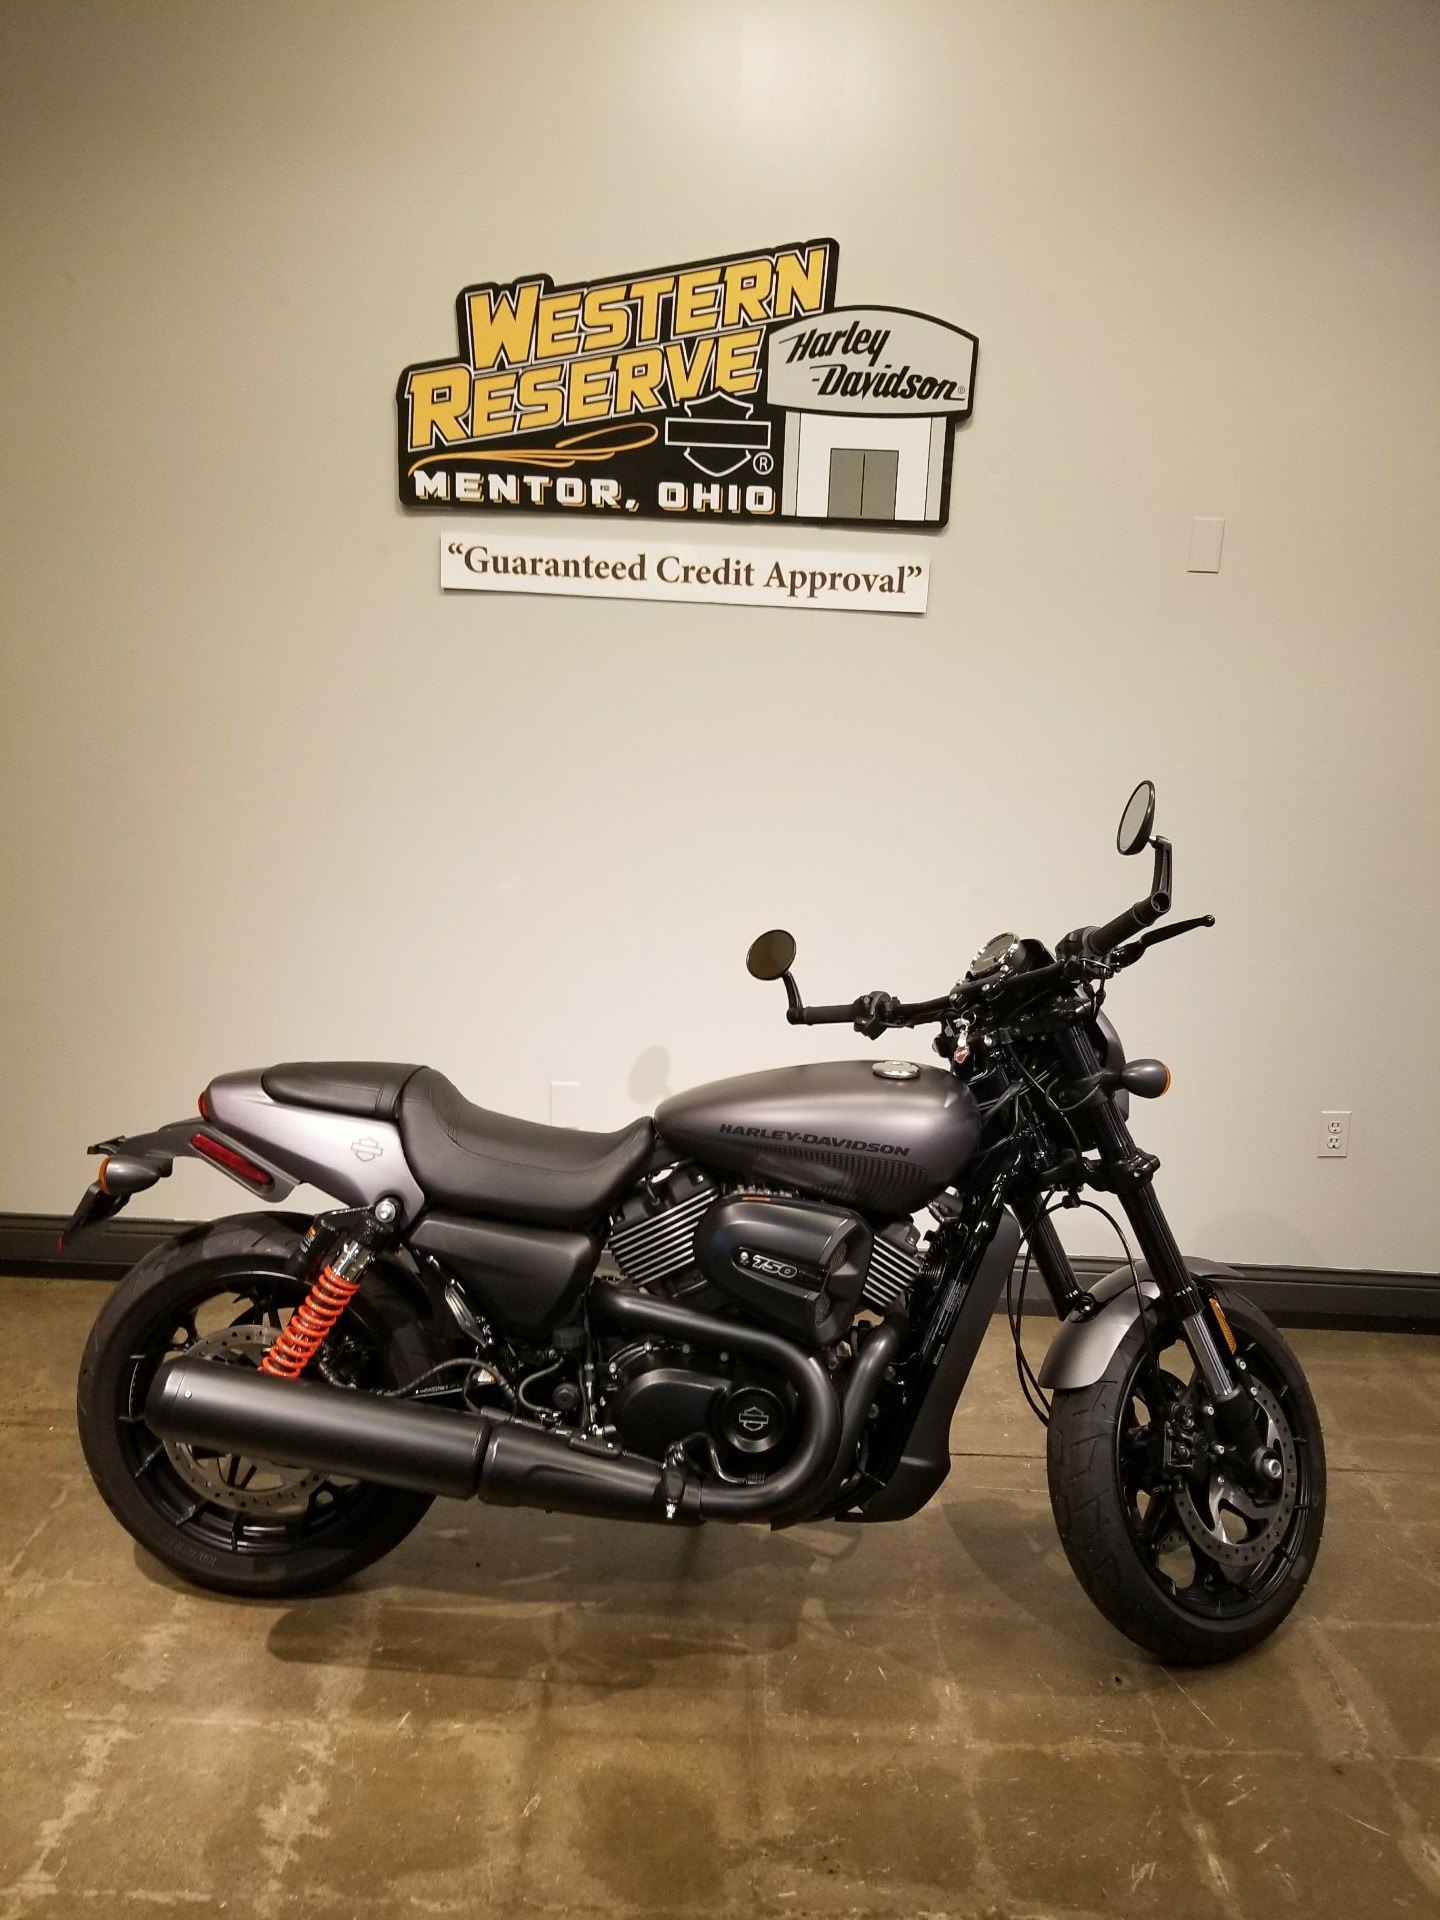 Used 2017 Harley Davidson Street 750 Motorcycles in Mentor OH